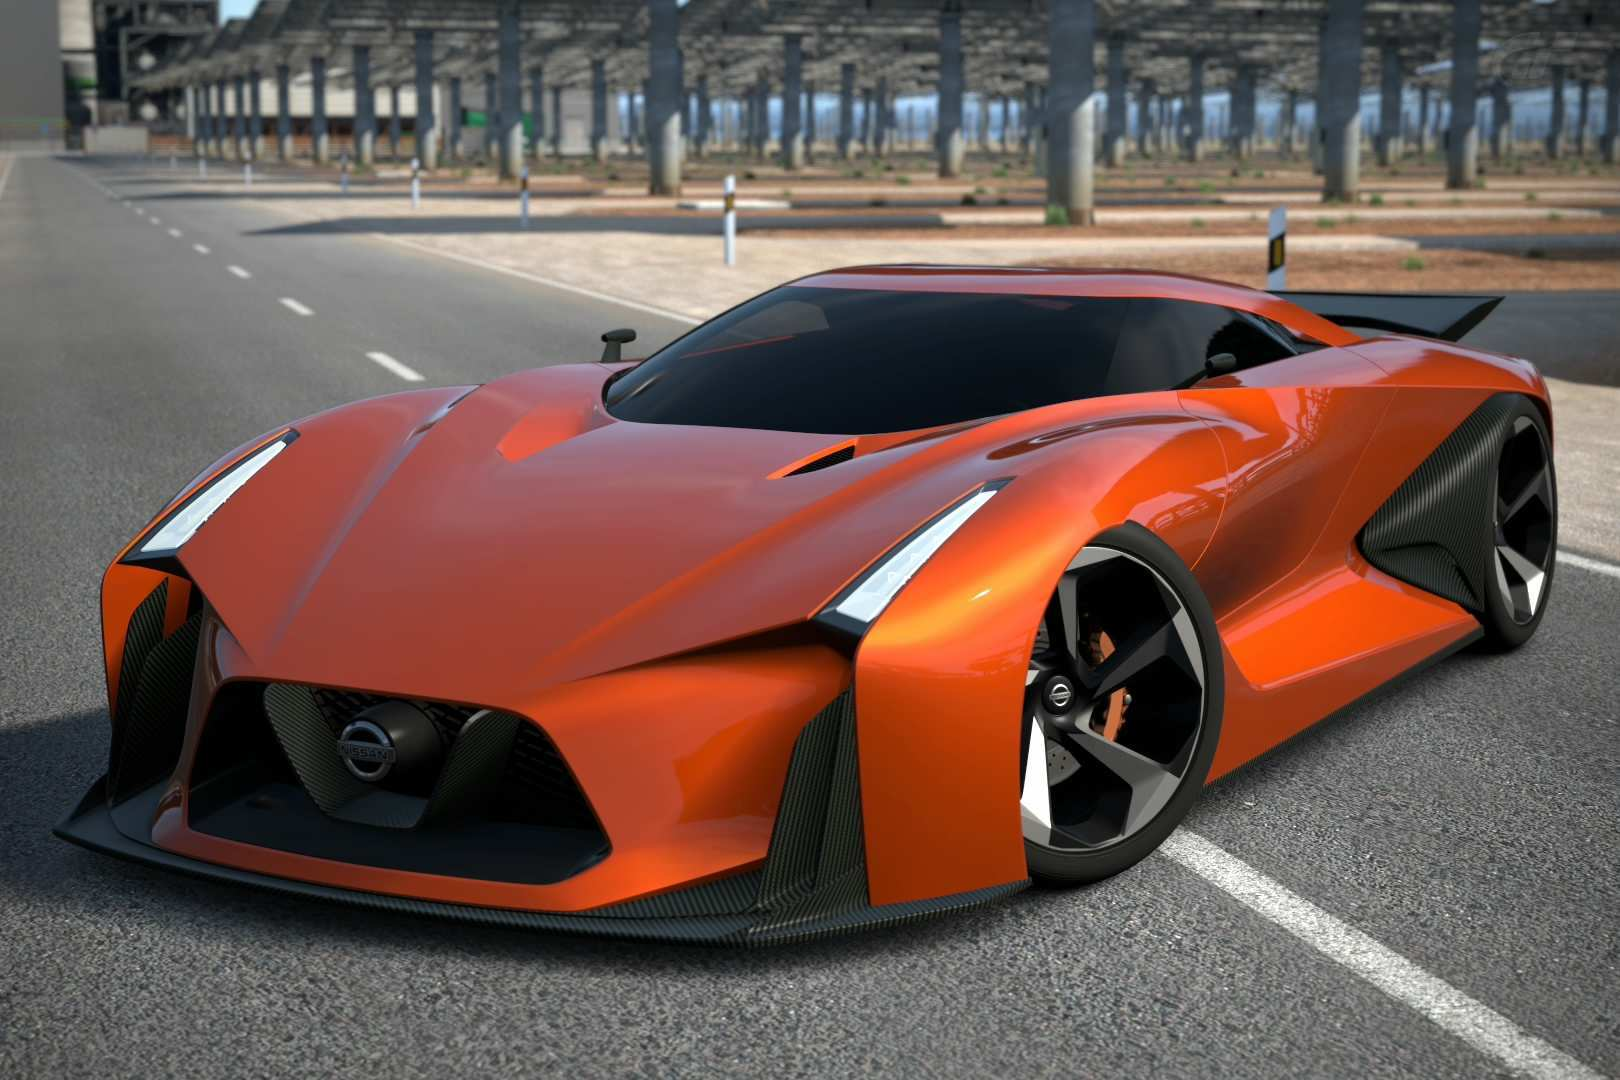 47 All New Nissan 2020 Vision Gt Price And Release Date